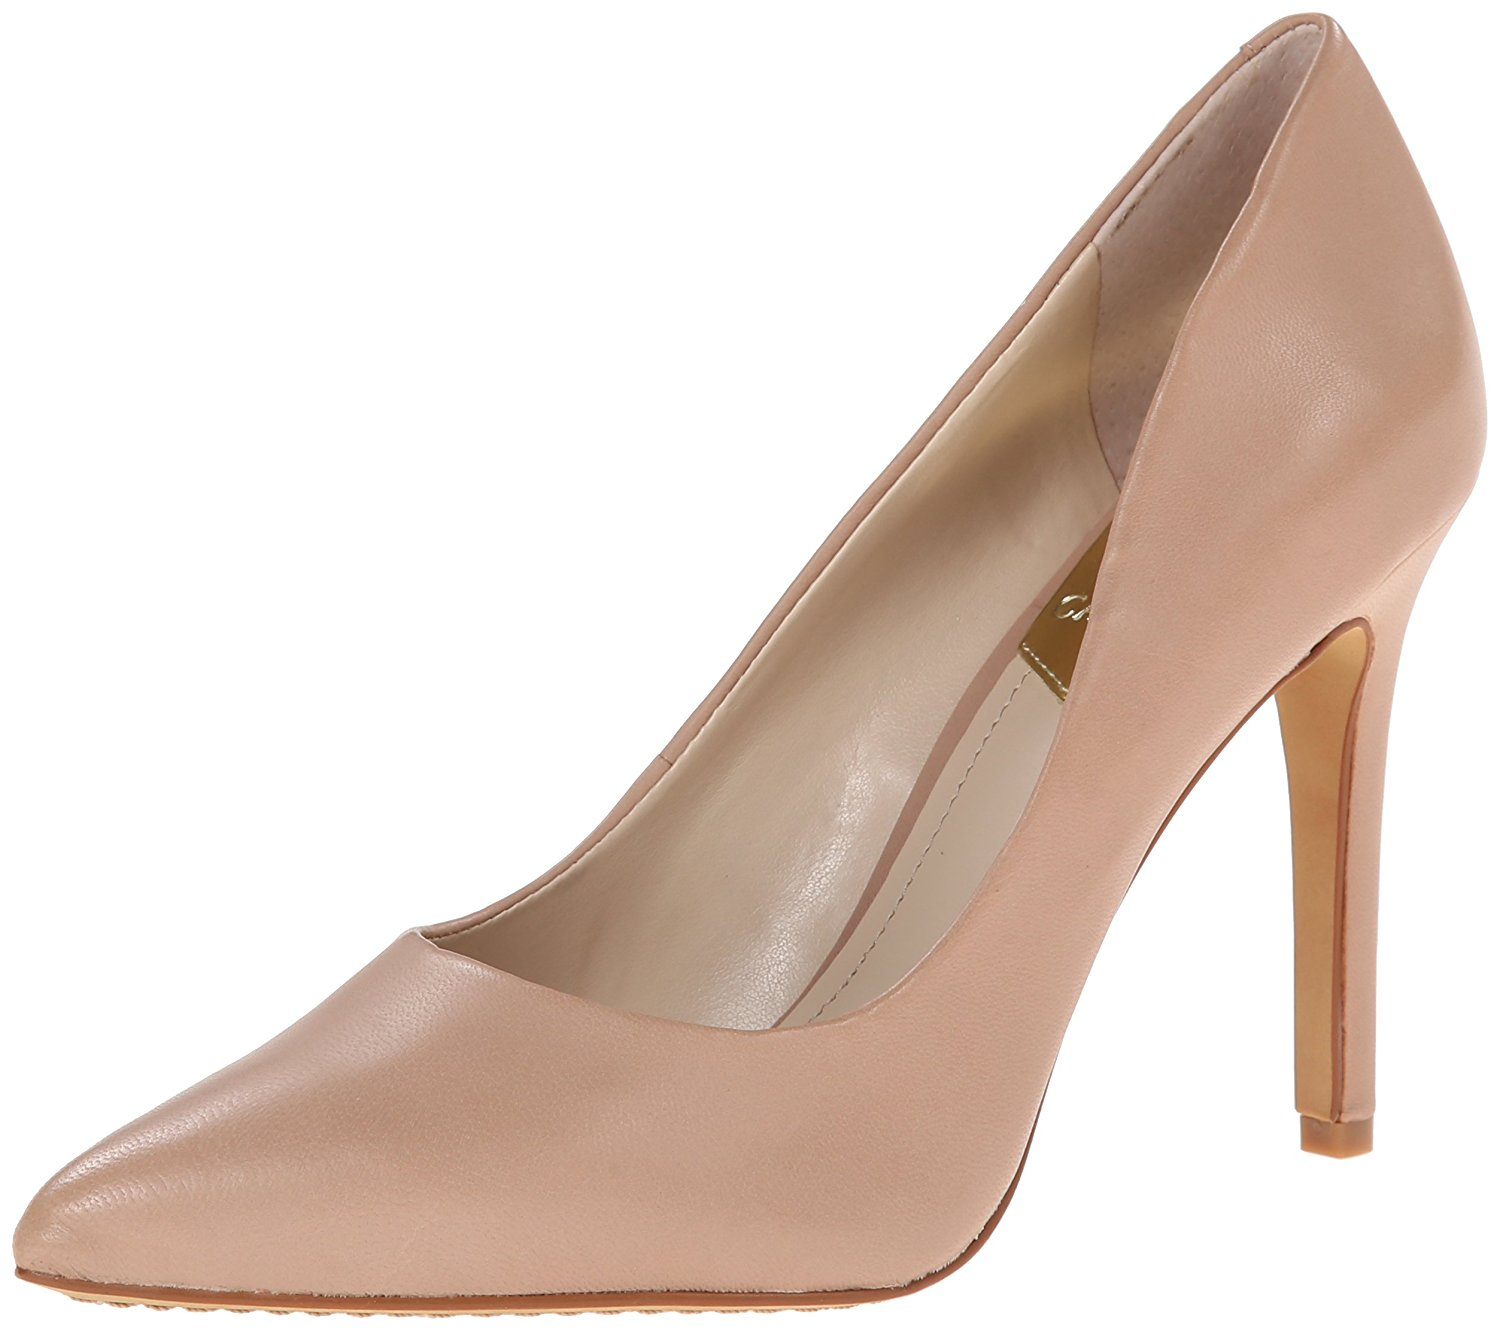 Vince Camuto Womens Kain Pointed Size Toe Classic Pumps Blush Size Pointed 8.5 1b8c6d